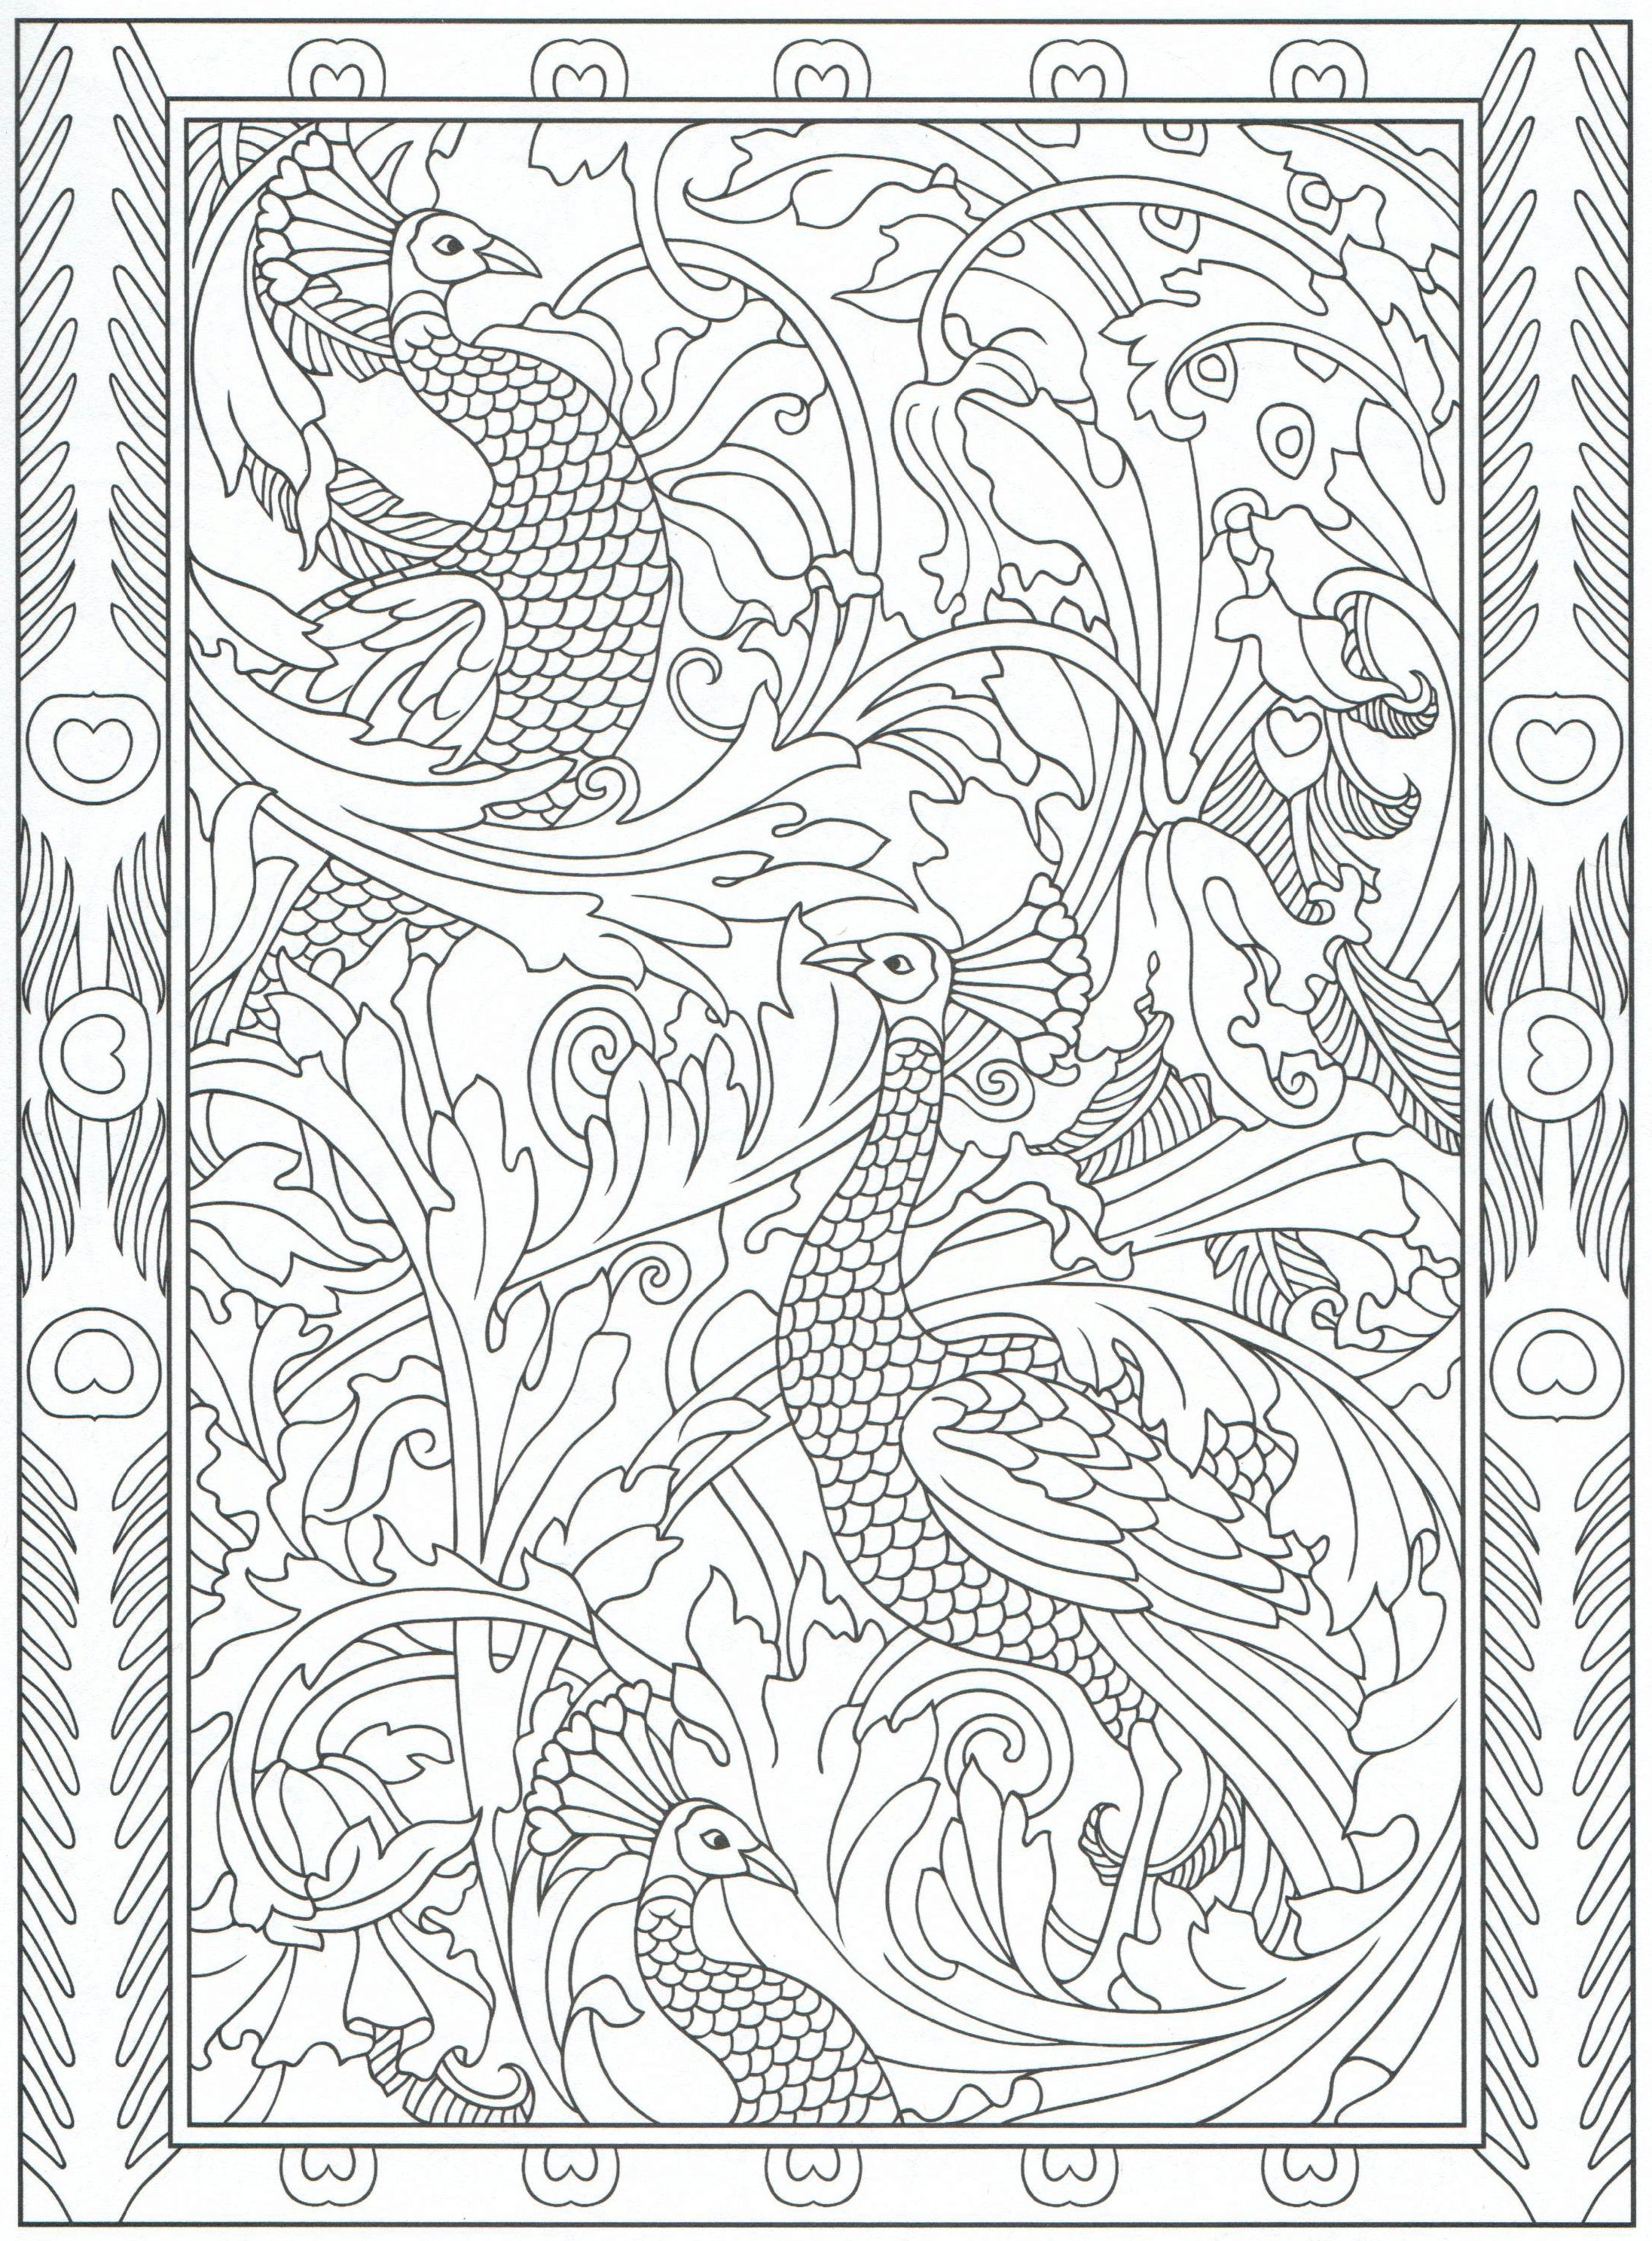 Peacock coloring page for adults 531 Color pages Stencils